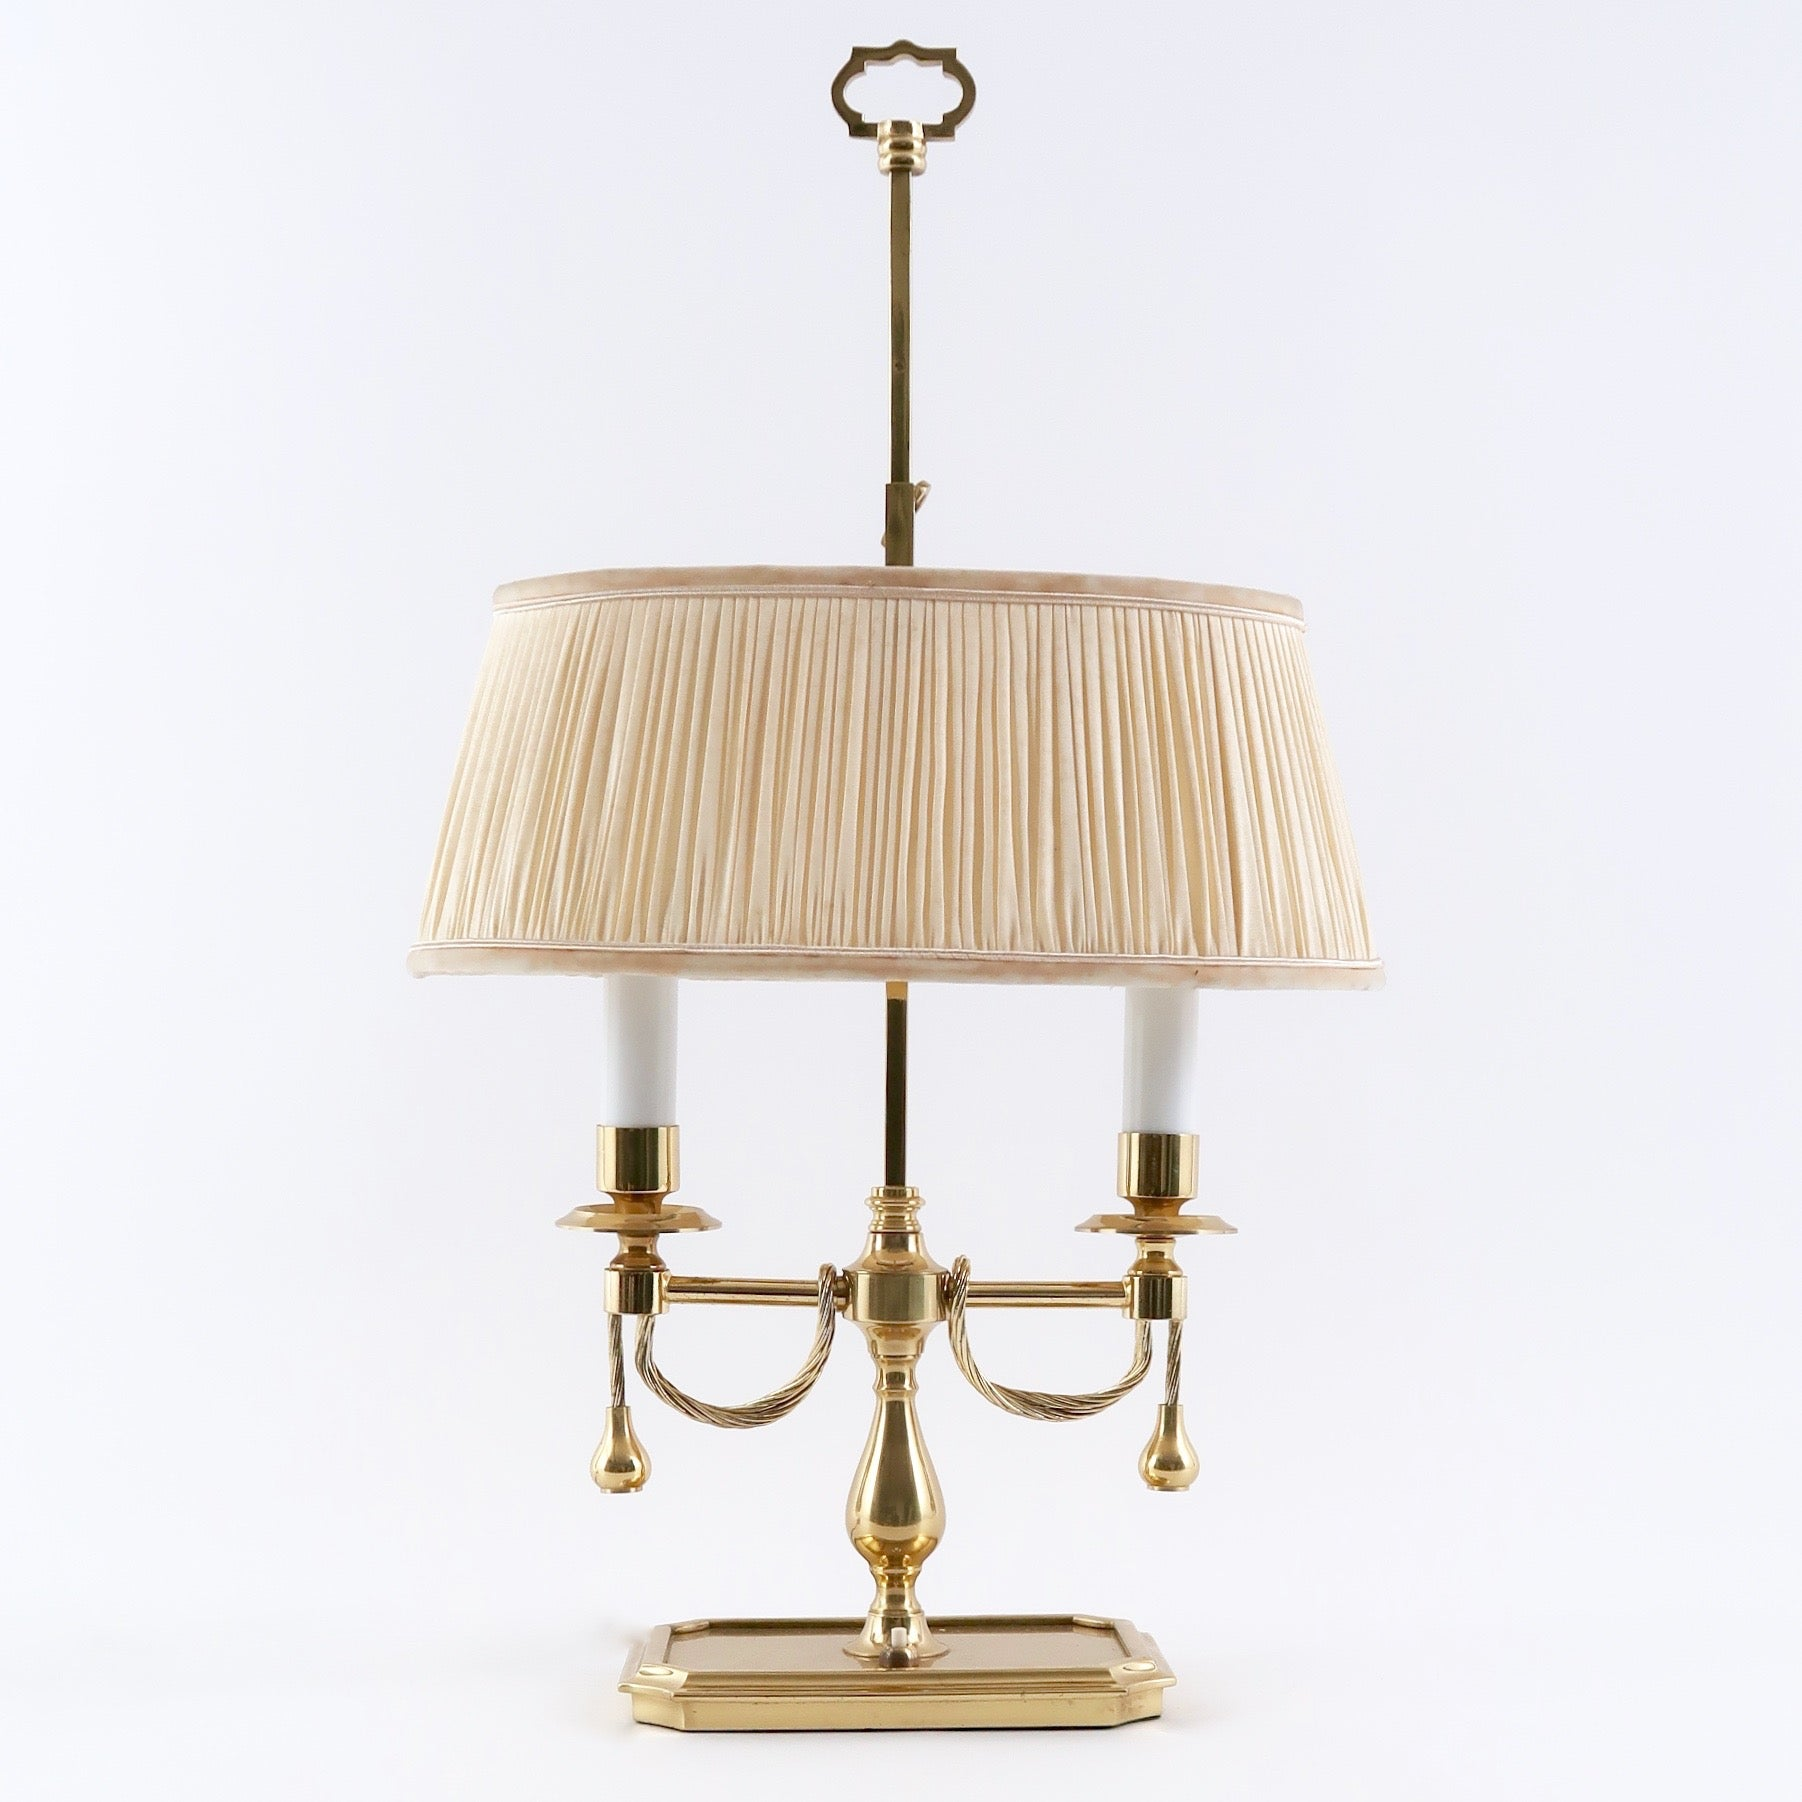 Polished brass table lamp in the french 'bouilotte' style.